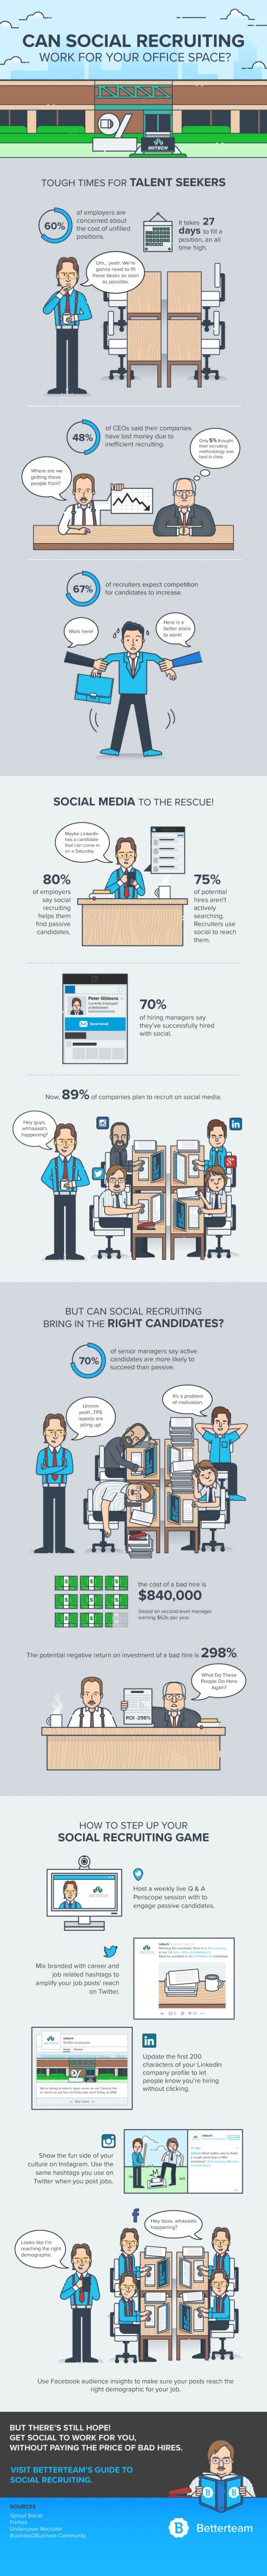 Did you get the memo?  A whopping 94% of recruiters used social media to find talent in 2015, and 89% of companies are planning to follow suit.  Knowing these stats, software recruiting company Betterteam crafted this Office Space-inspired infographic to show the massive impact social media has on the hiring world.  Some of the highlights:  75% of potential hires aren't actively searching. Recruiters use social to reach them. It takes 27 days to fill a position, an all-time high. 80% of…